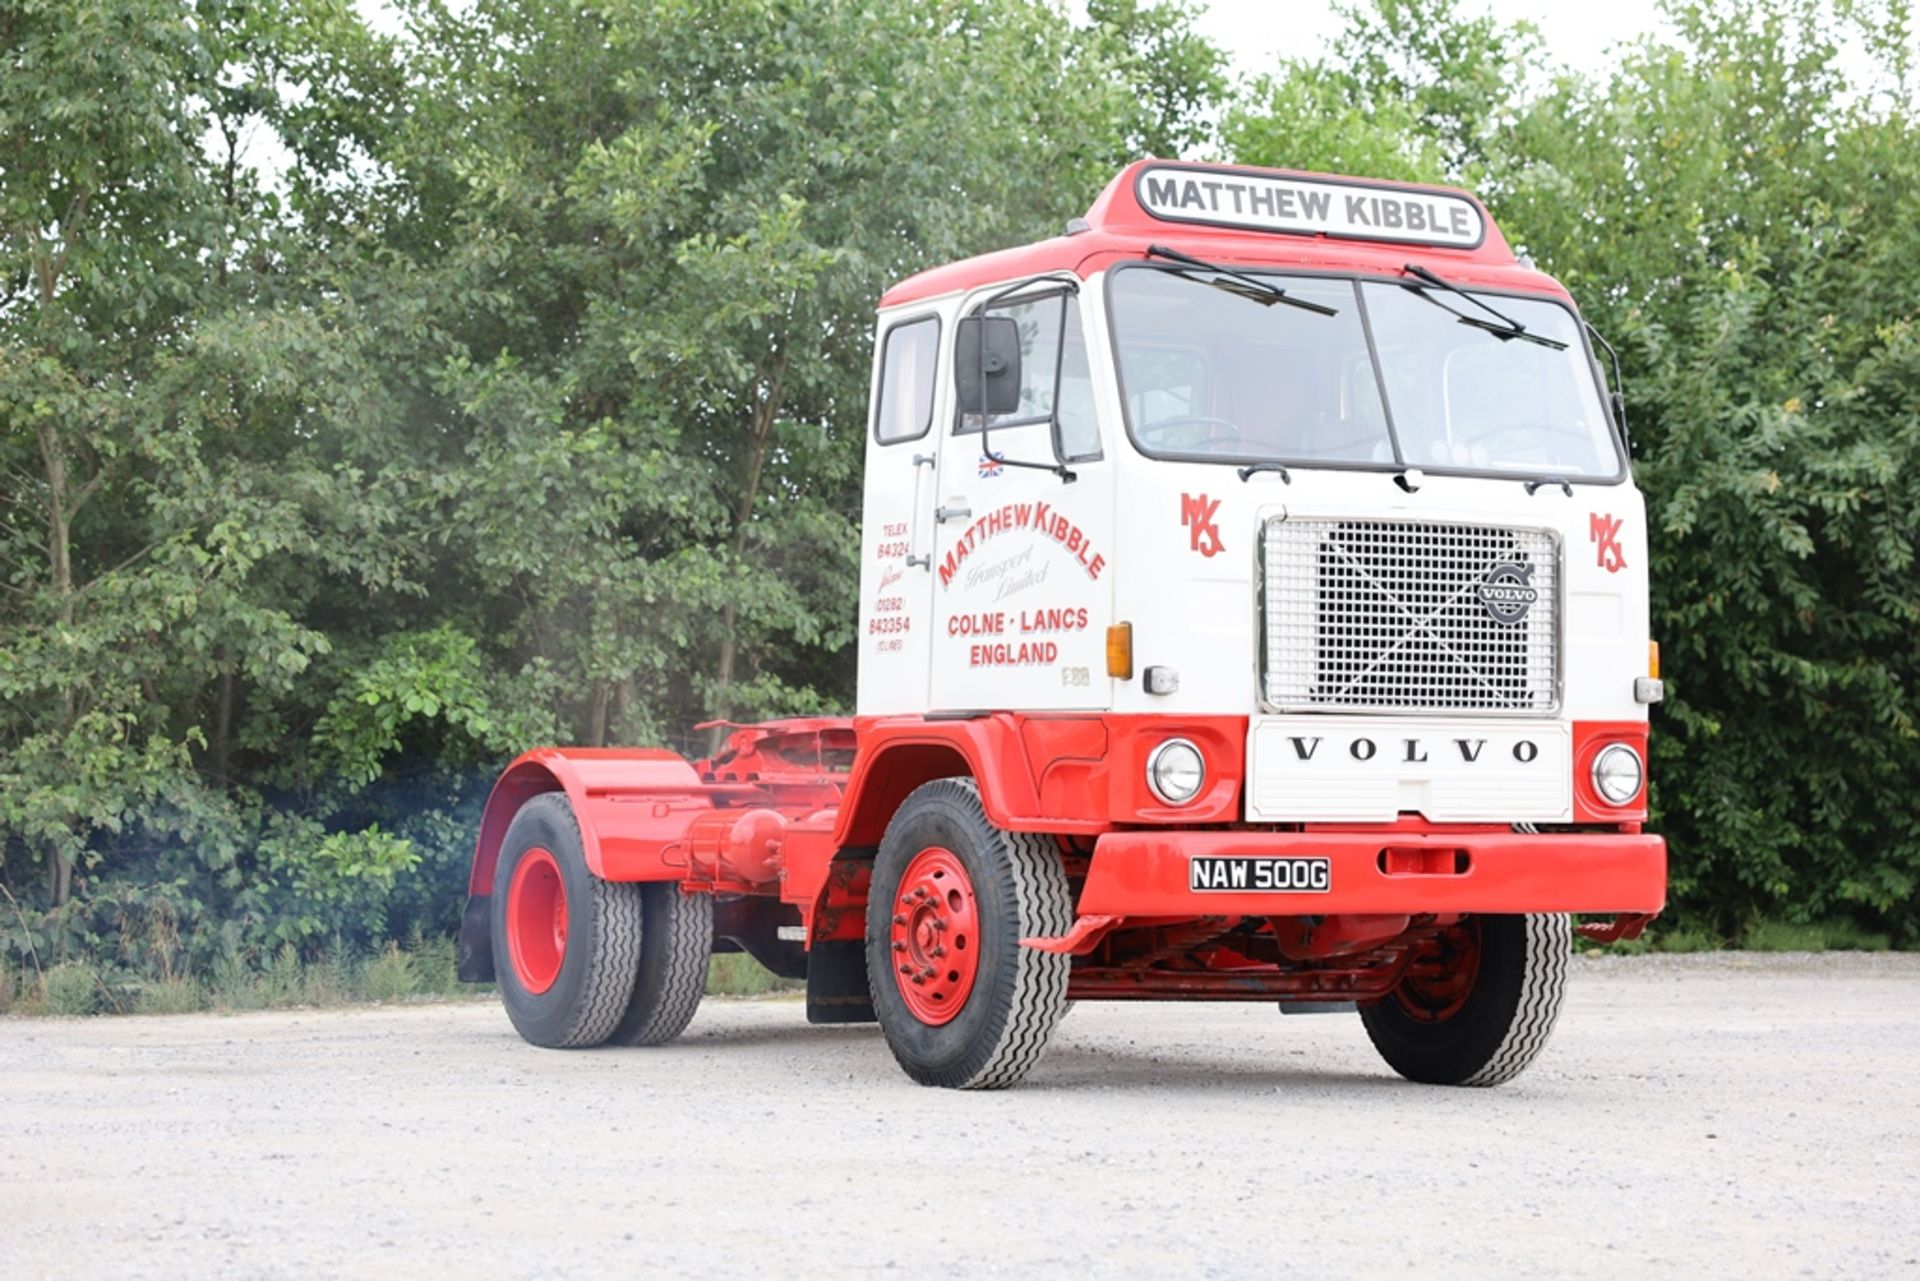 Volvo F88.240 4X2 TRACTOR UNIT, registration no. NAW 500G, date first registered 13/08/1968, fully